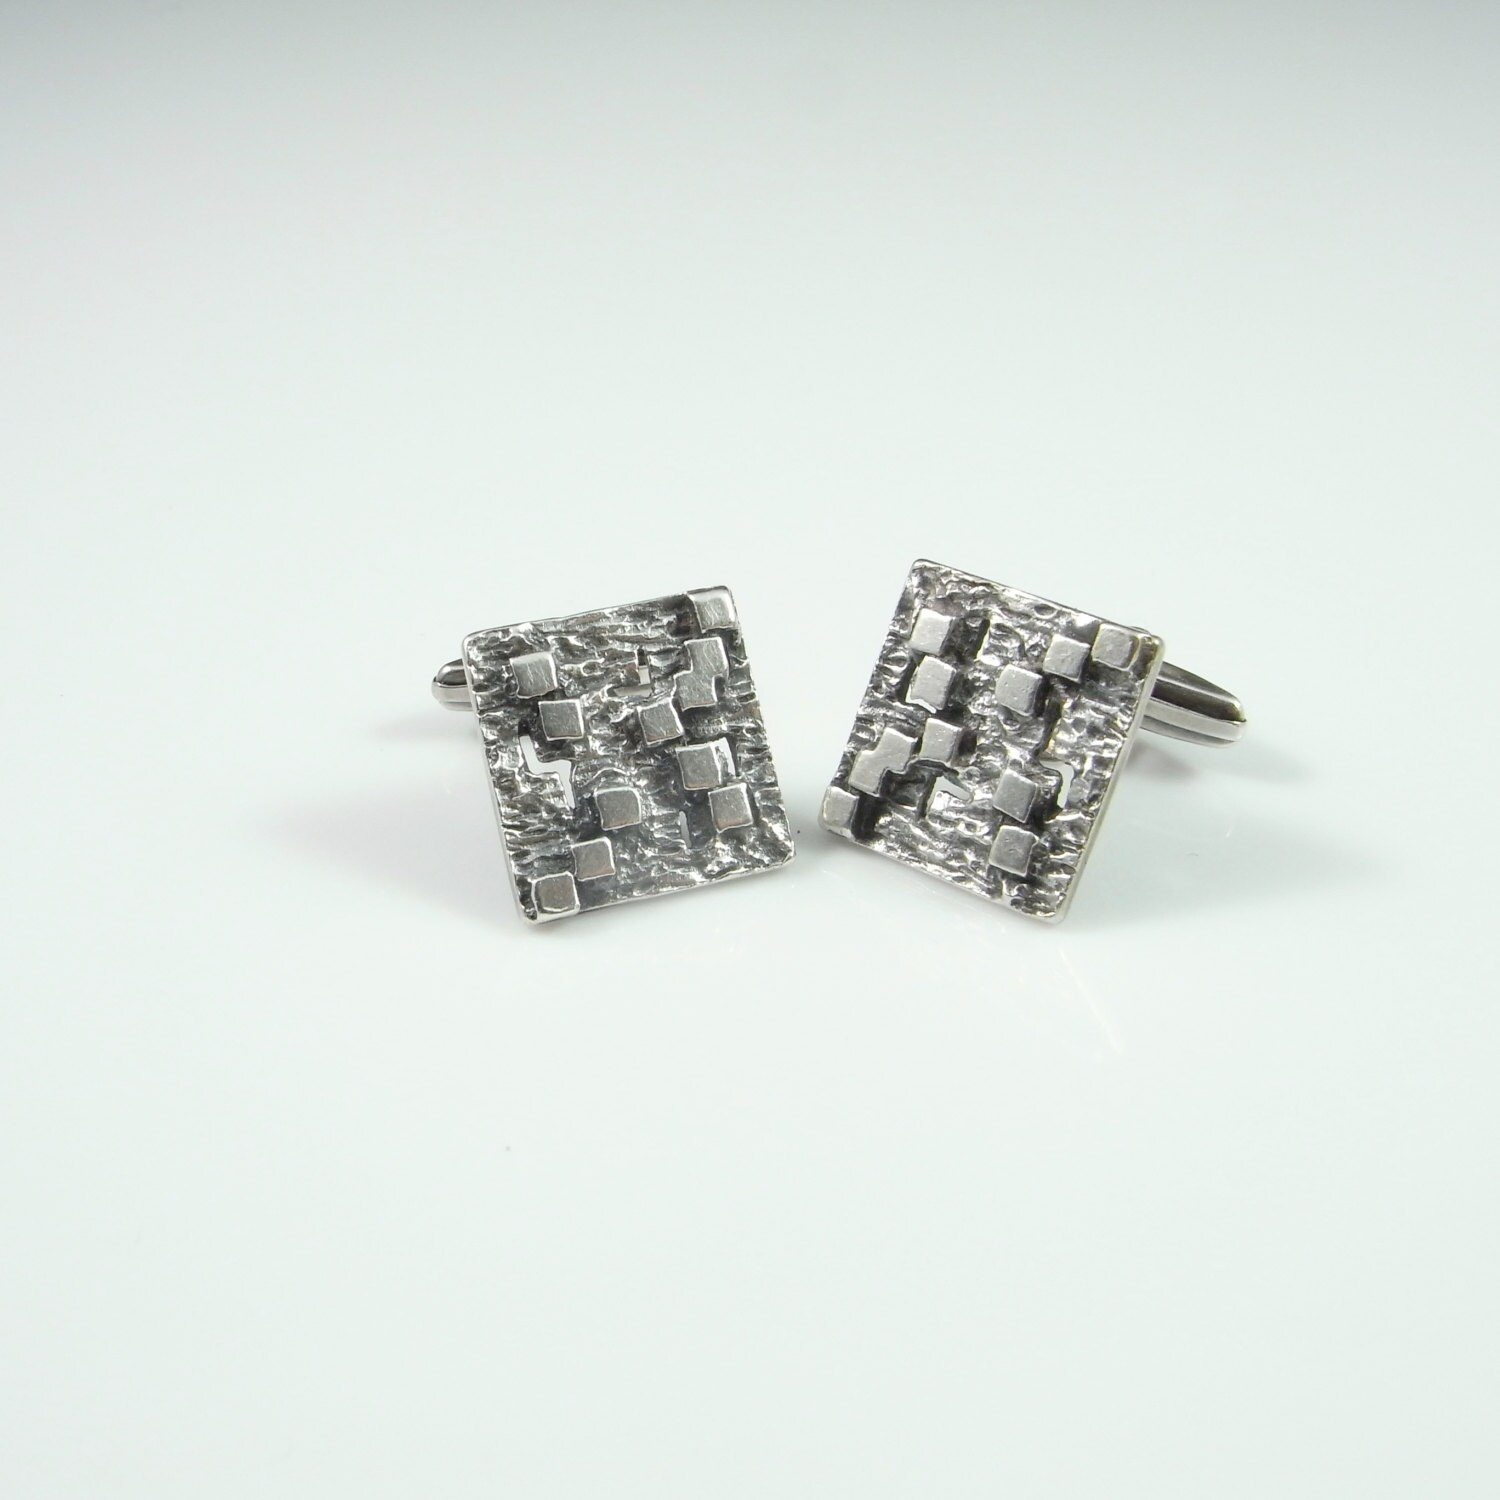 Funky Retro Wedding Fine Silver Unique Cuff Links Grooms Accessories 1950S Modernist Jewelry Gift For Fiance Birthday Bridal One Of A Kind